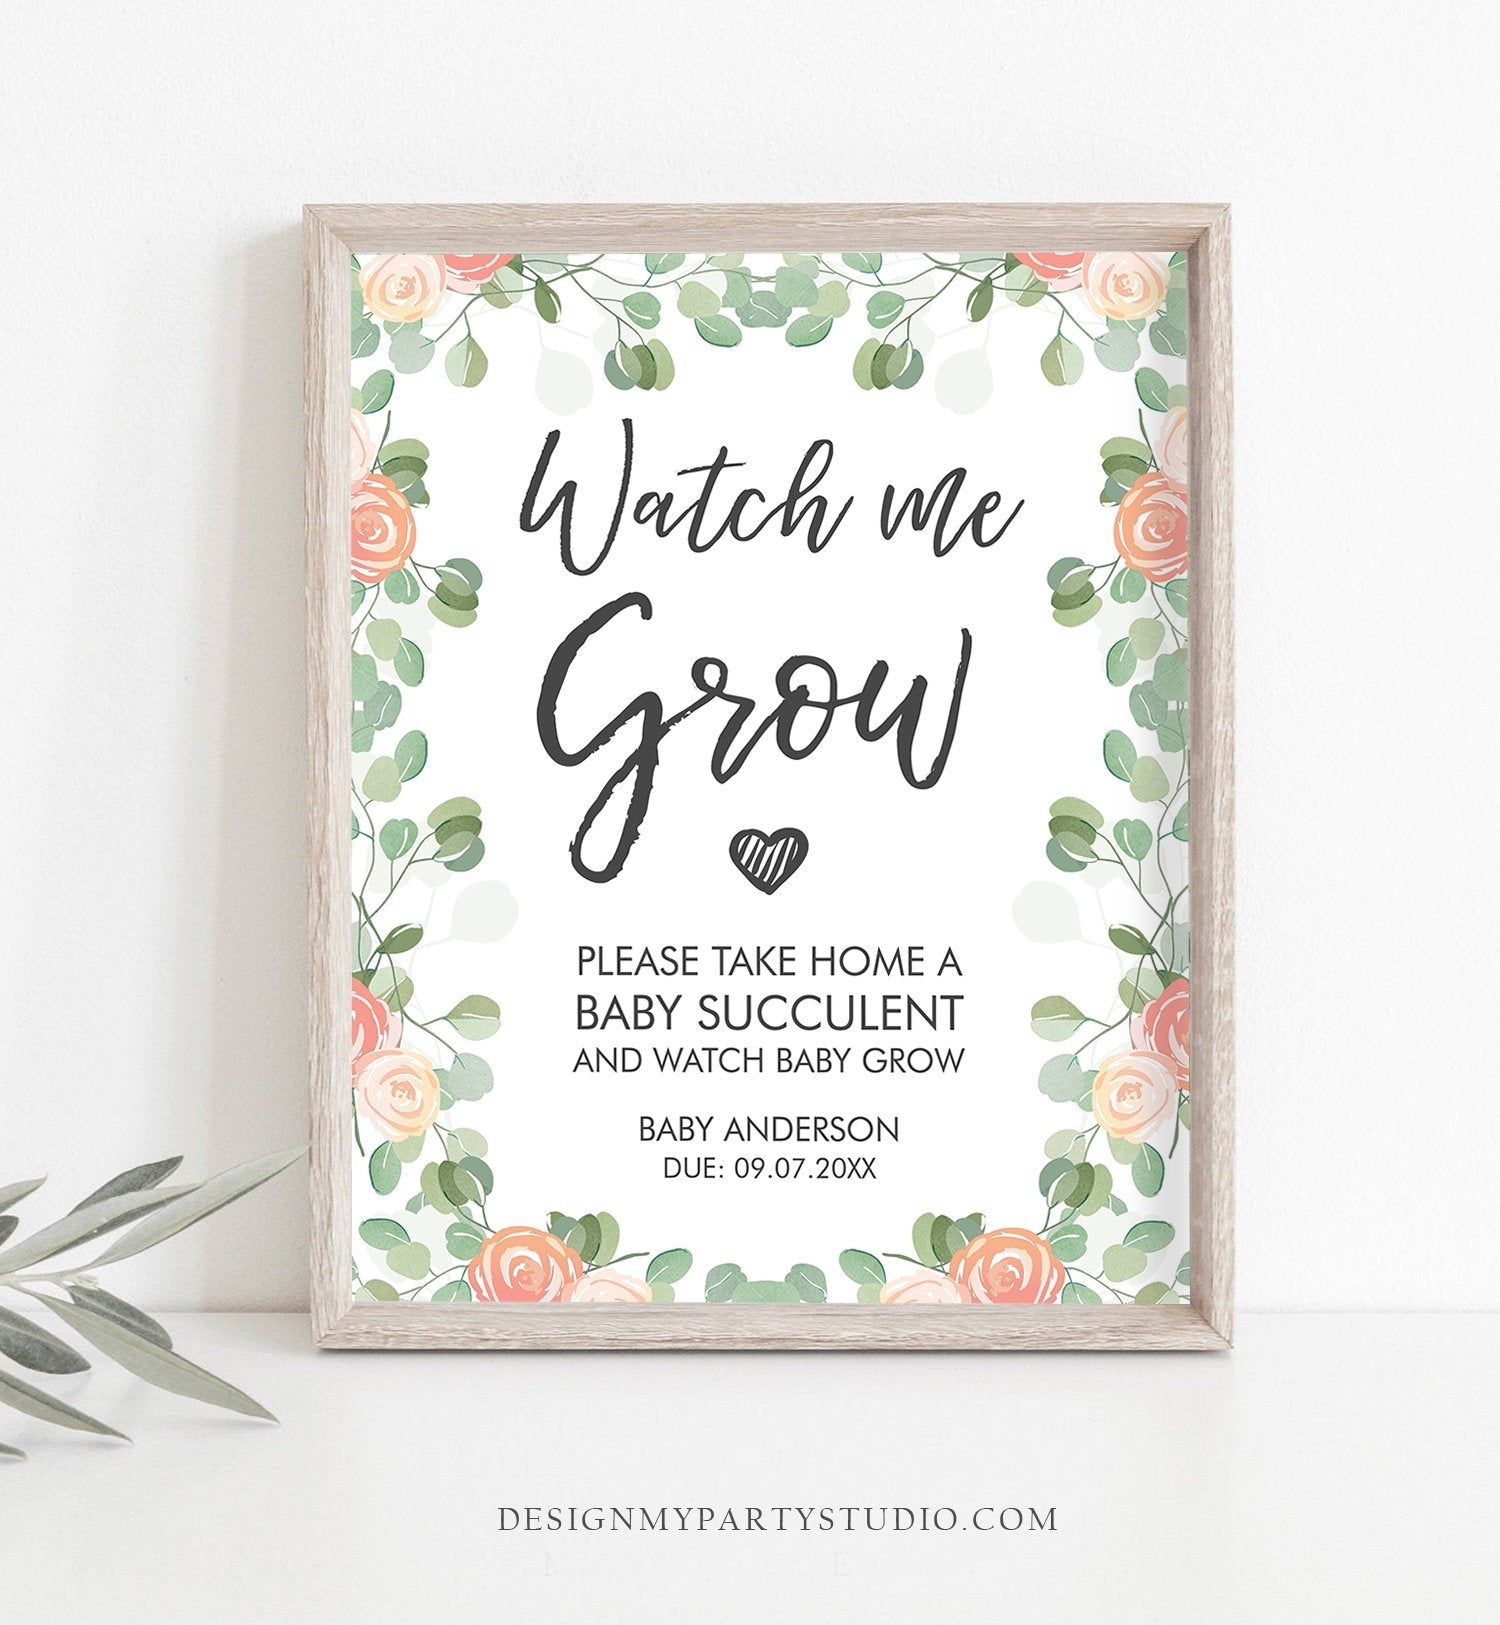 Editable Watch Me Grow Baby Shower Favors Watch Me Grow Sign Favor Sign Succulent Sign Floral Take a Succulent Template Corjl PRINTABLE 0029